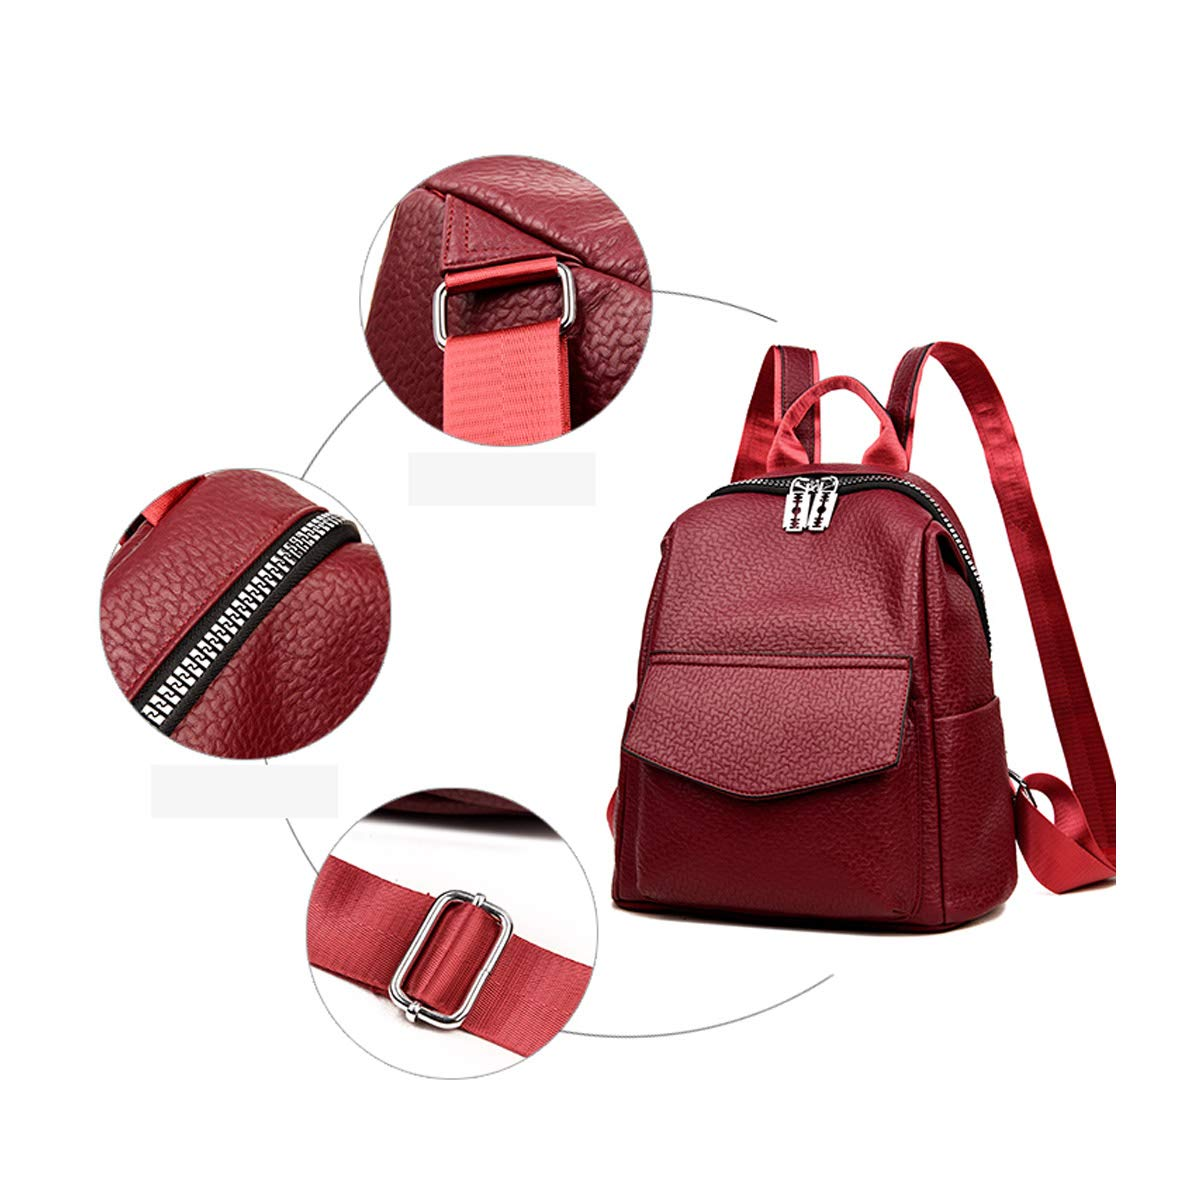 Black//red Color : Red, Size : 31cm32cm15cm PU Leather Haoyushangmao Girls Multifunctional Backpack for Daily Travel//Tourism//School//Work//Fashion//Leisure Stylish Large Capacity